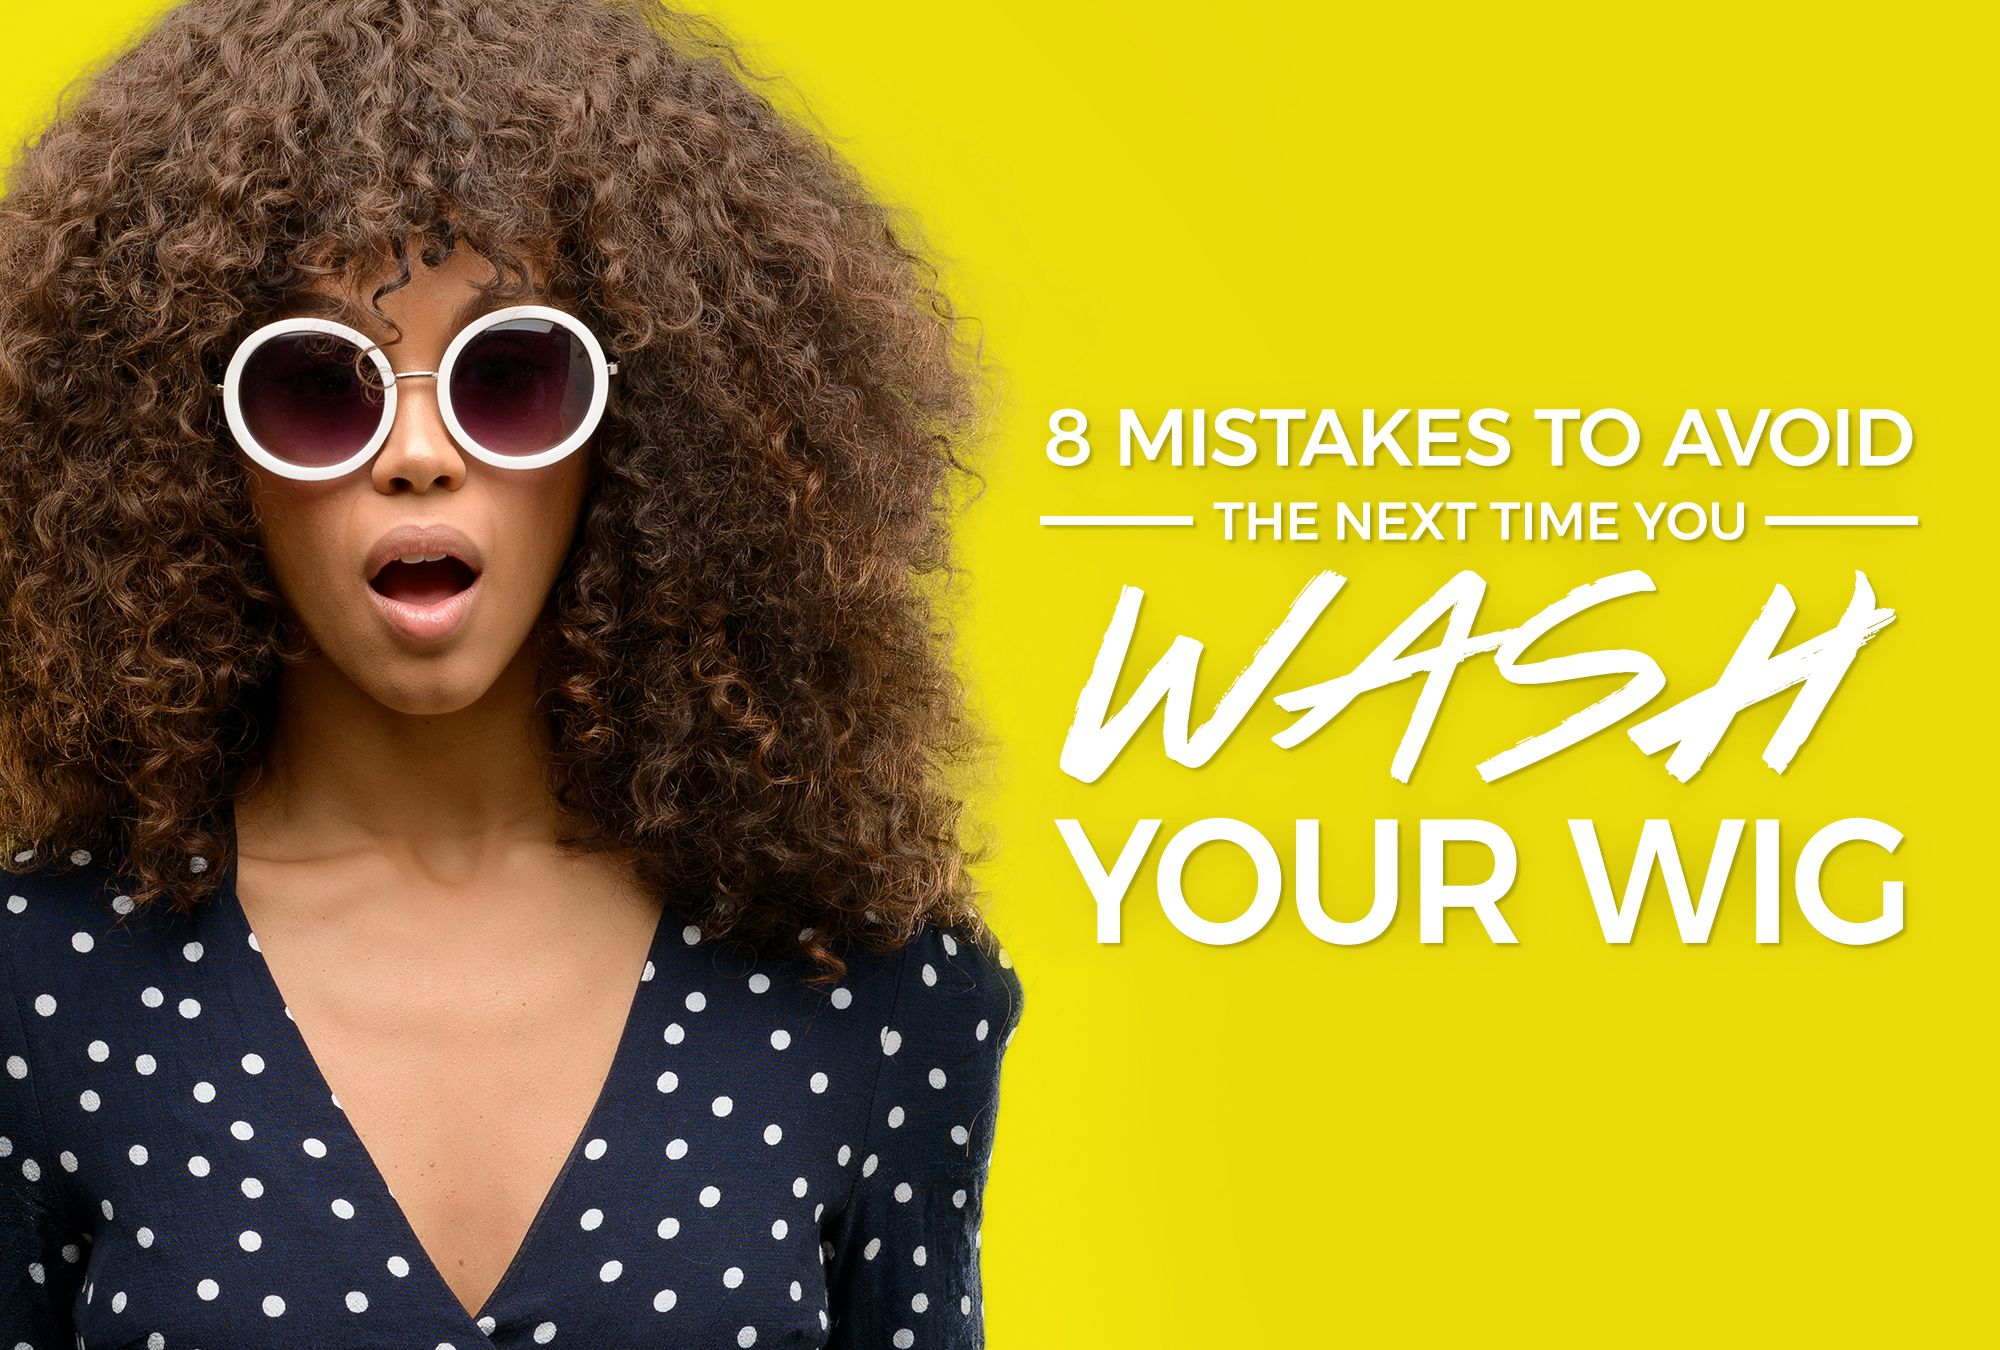 8 Mistakes To Avoid The Next Time You Wash Your Wig